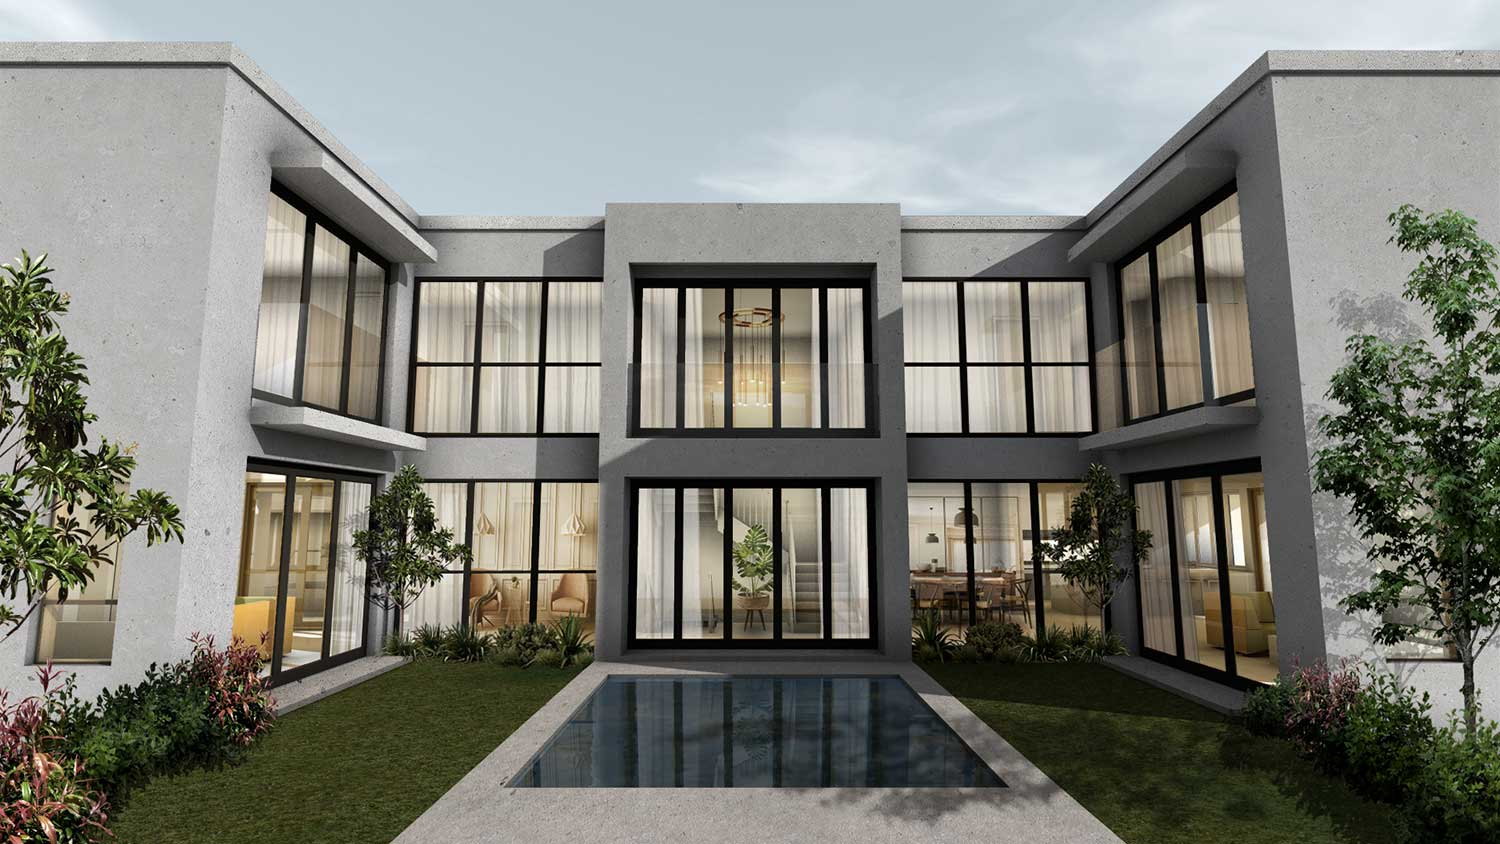 Double Storey Residential Dwelling, 8 Star Energy Rating, Sembrano Design